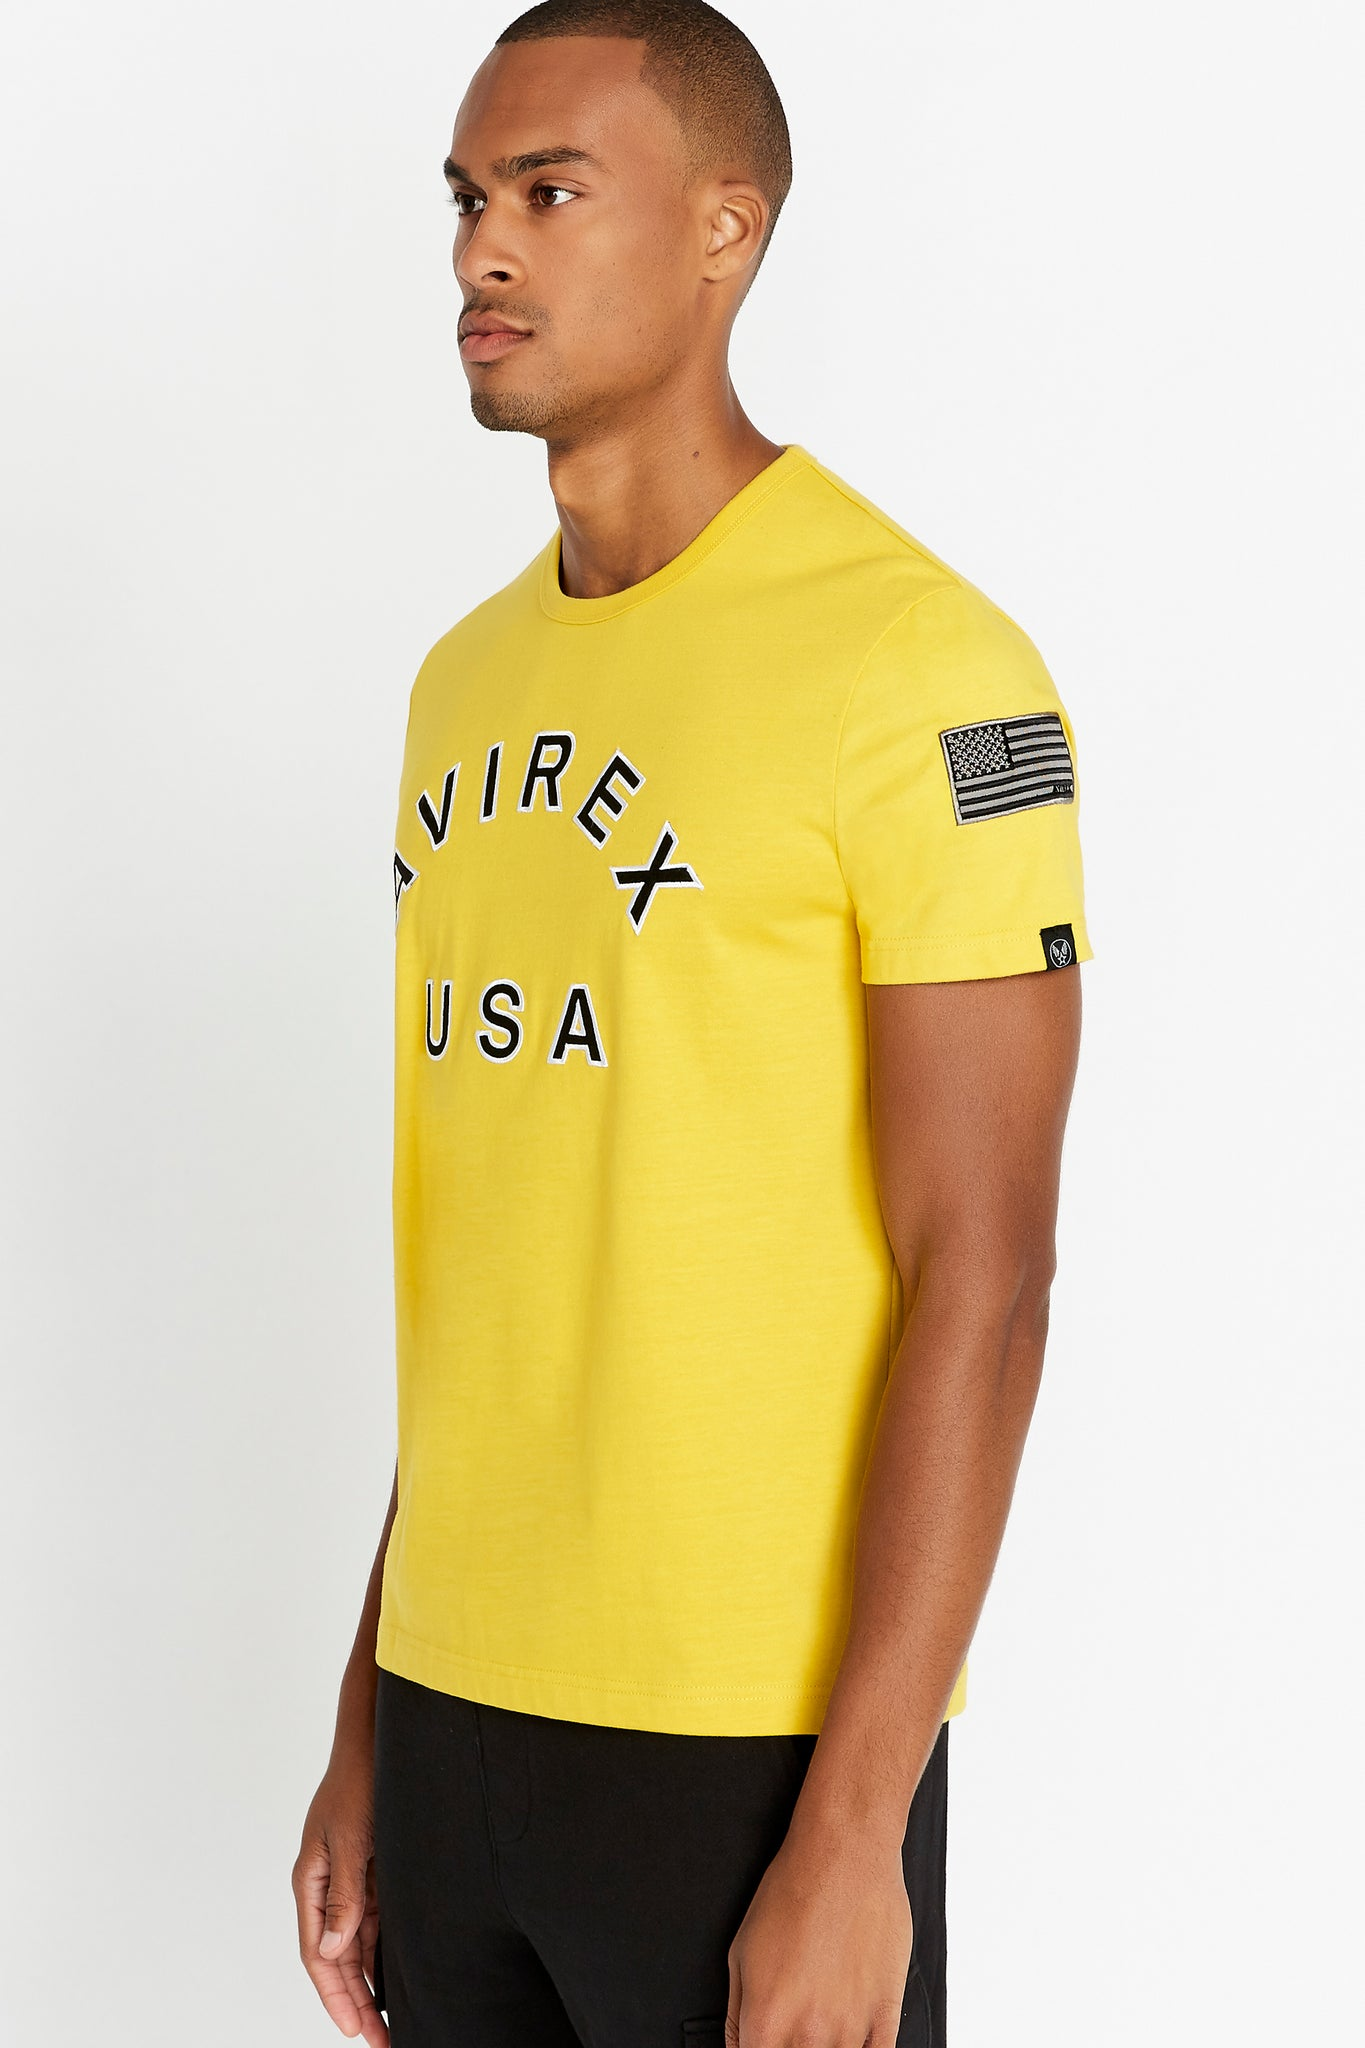 Side view of men wearing a yellow short sleeve crew T-shirt with bold logo across the front saying Avirex USA and a patch on left sleeve